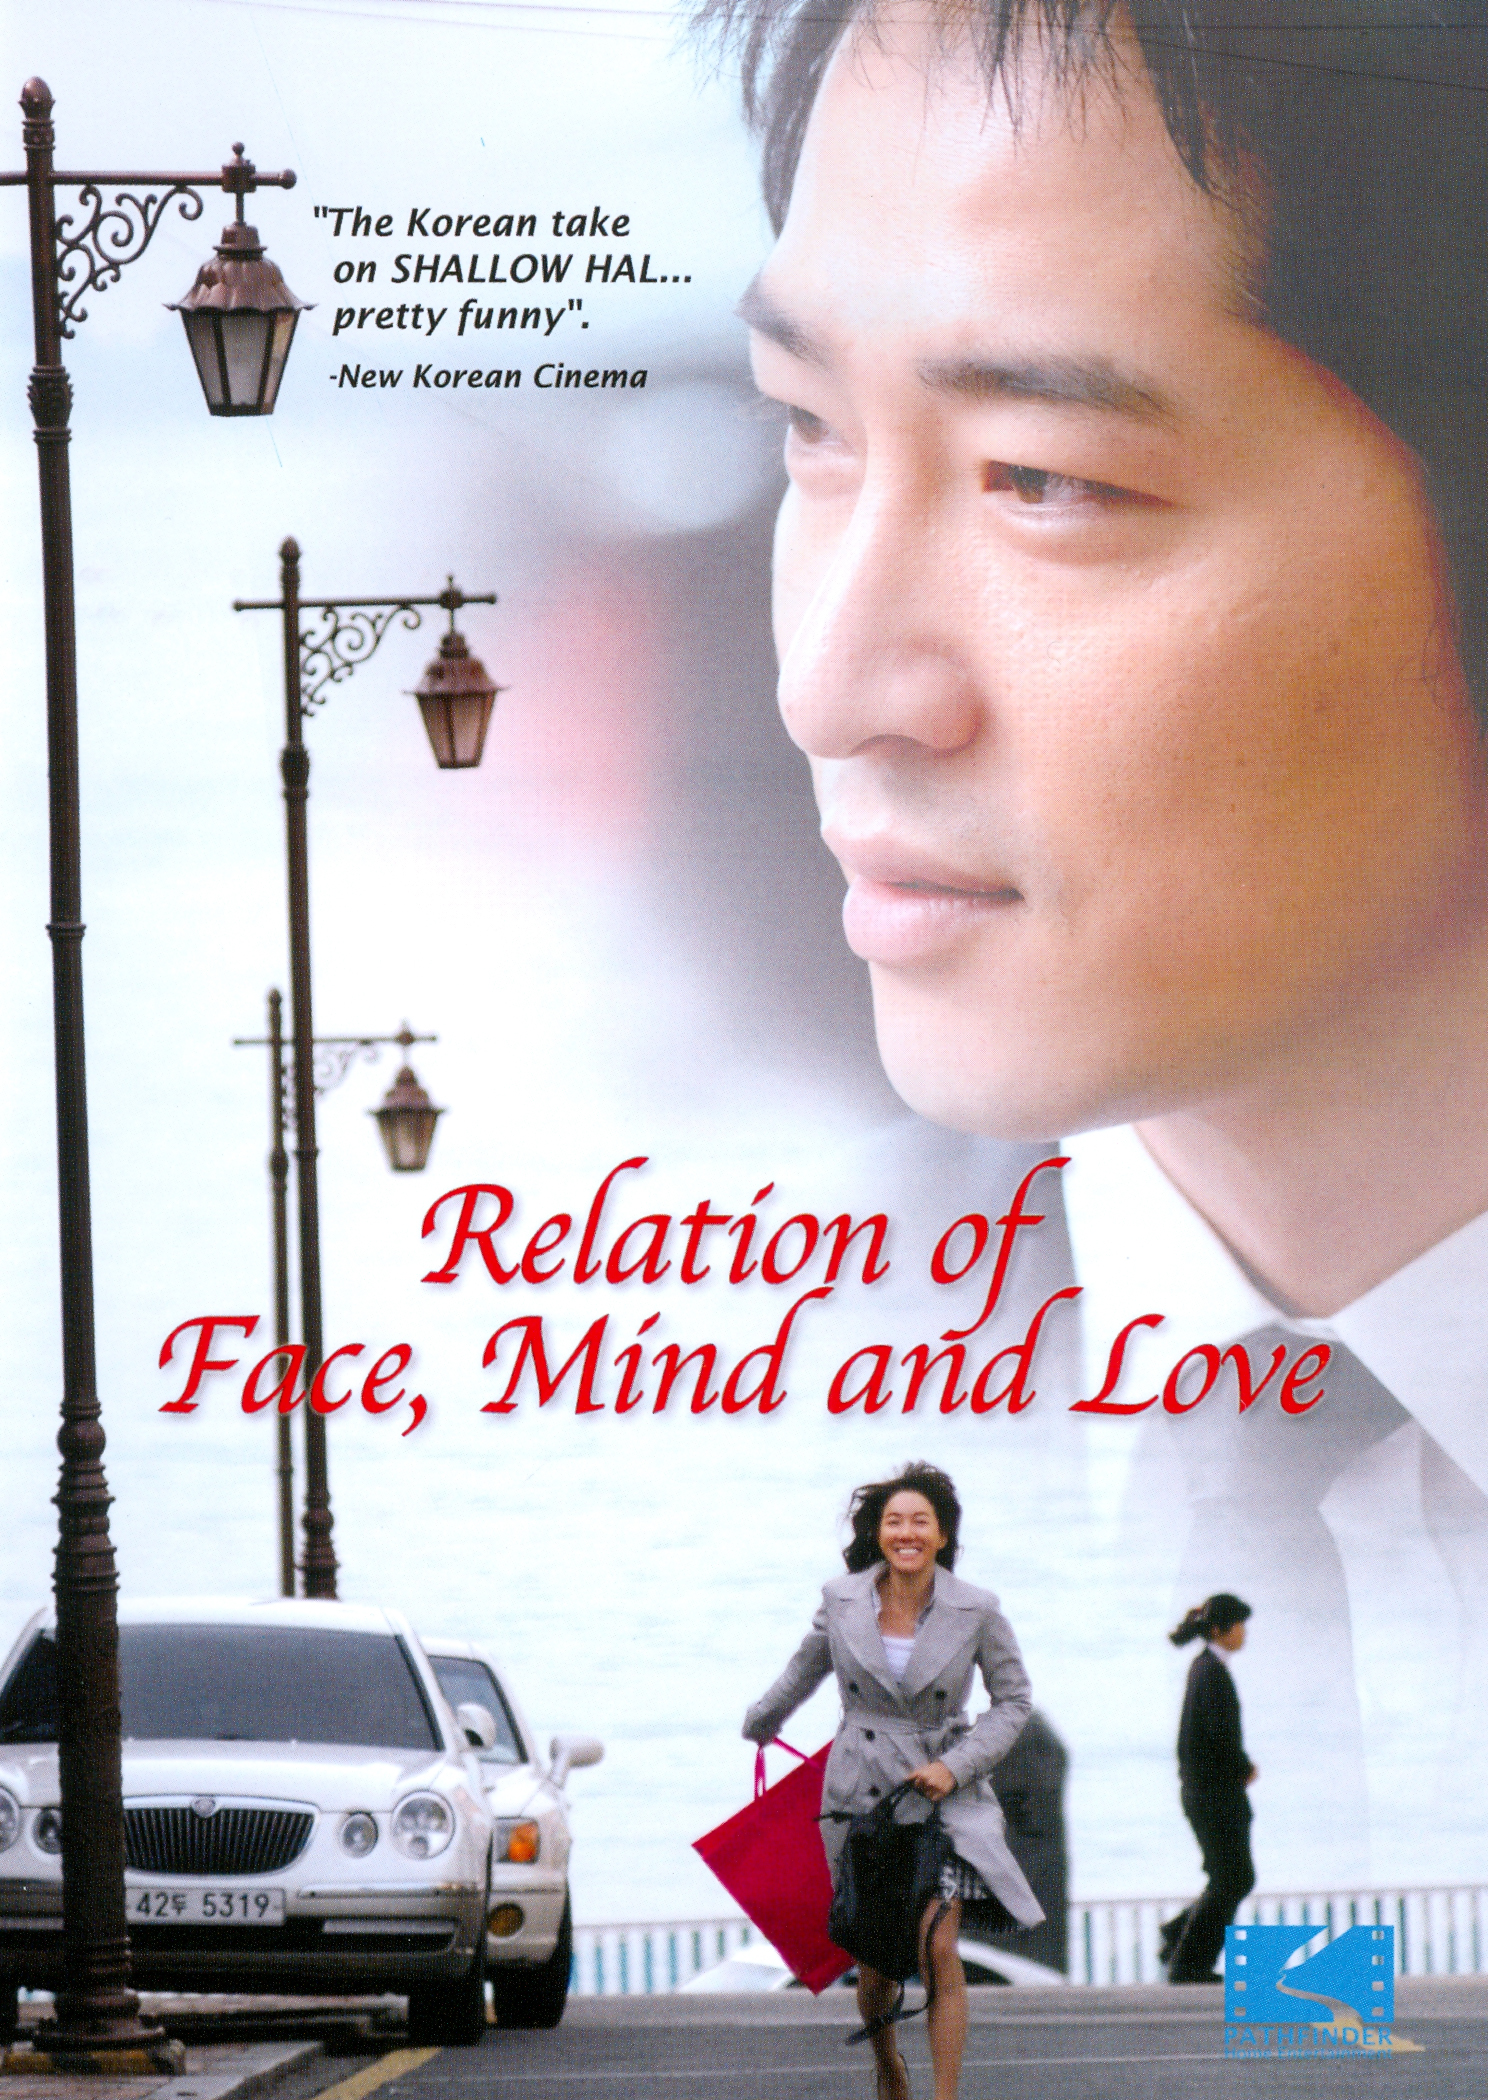 The Relation of Face, Mind and Love